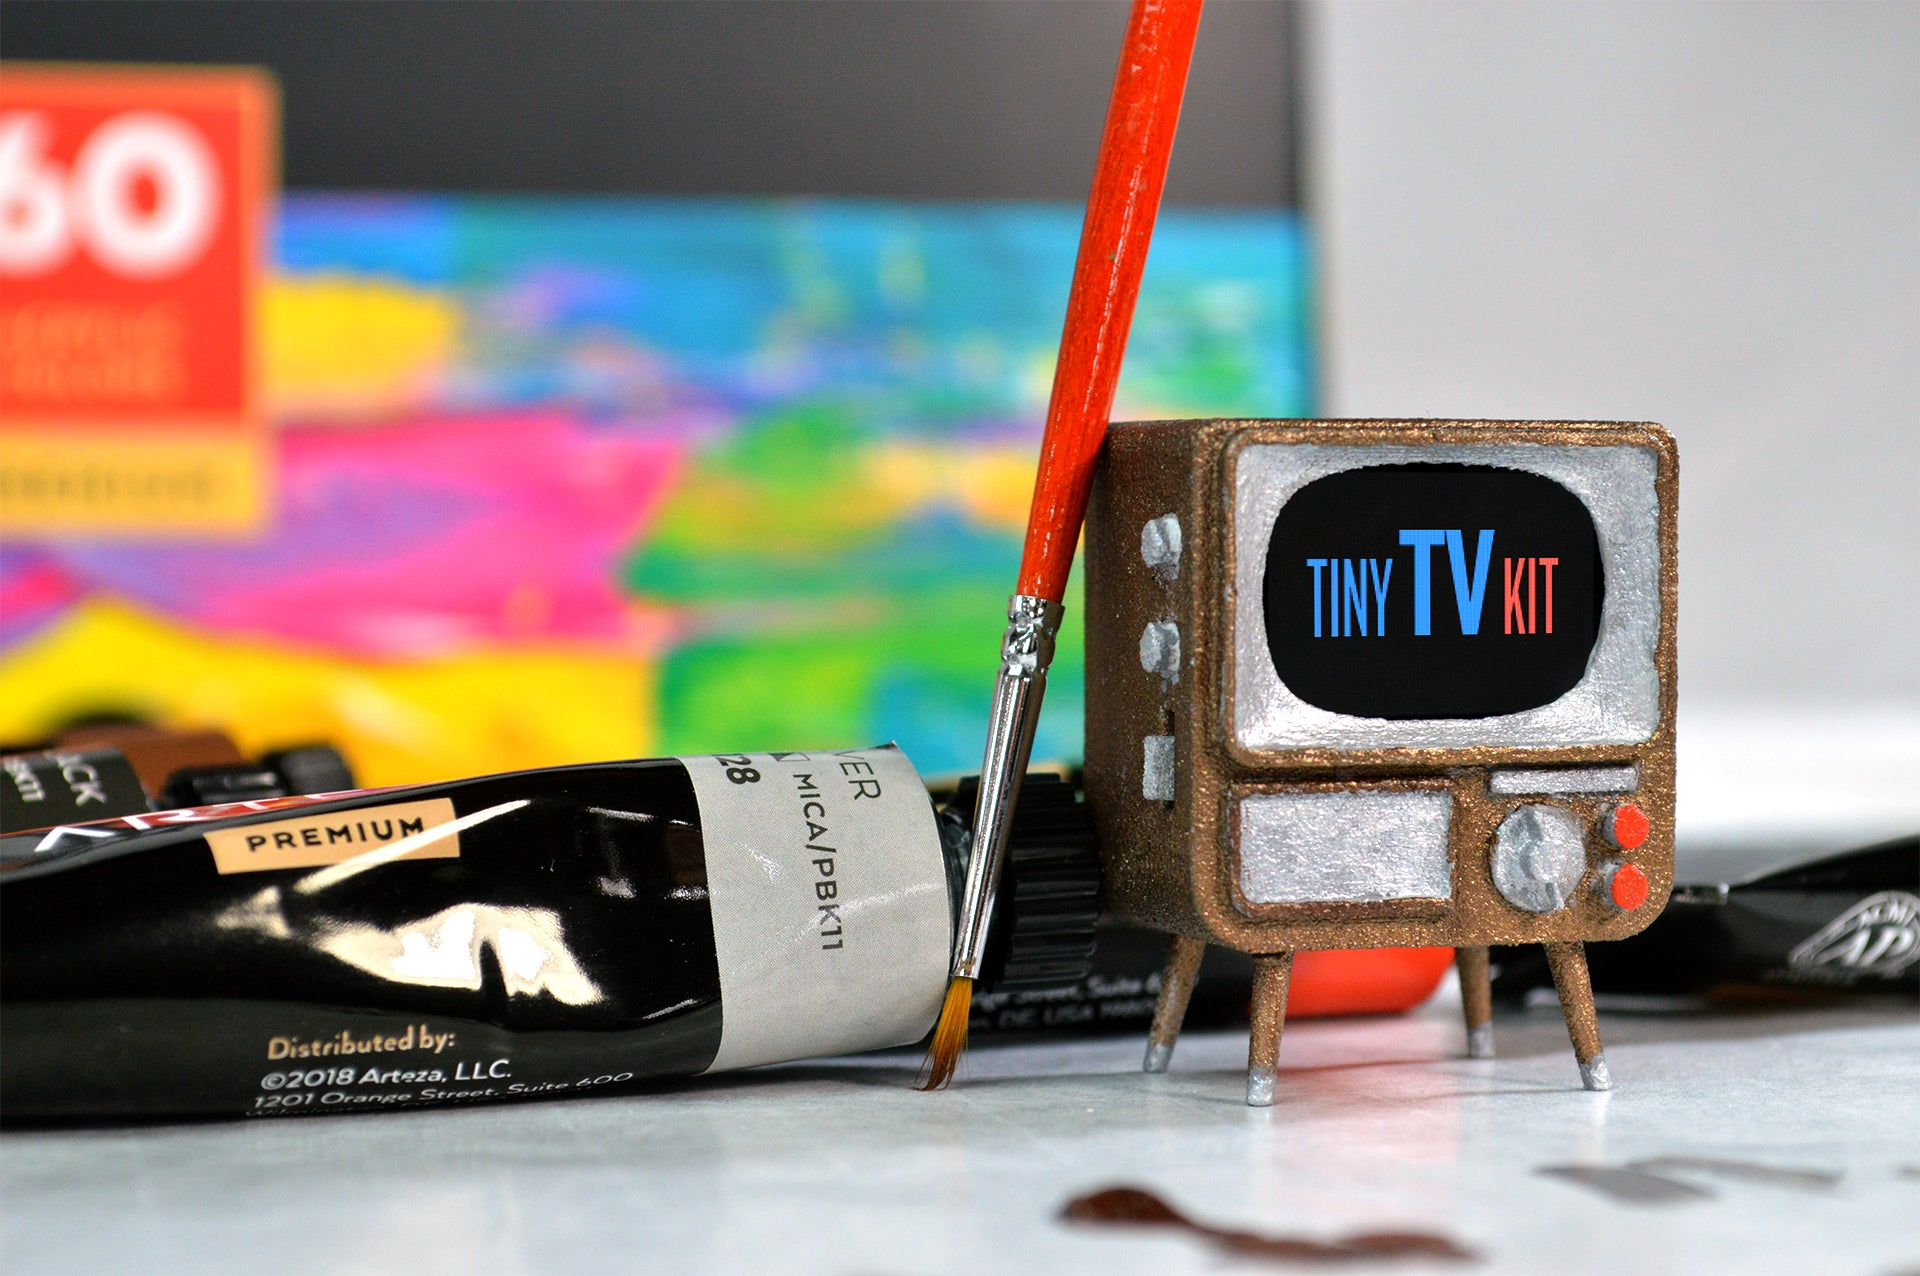 Customizing your DIY TinyTV Kit